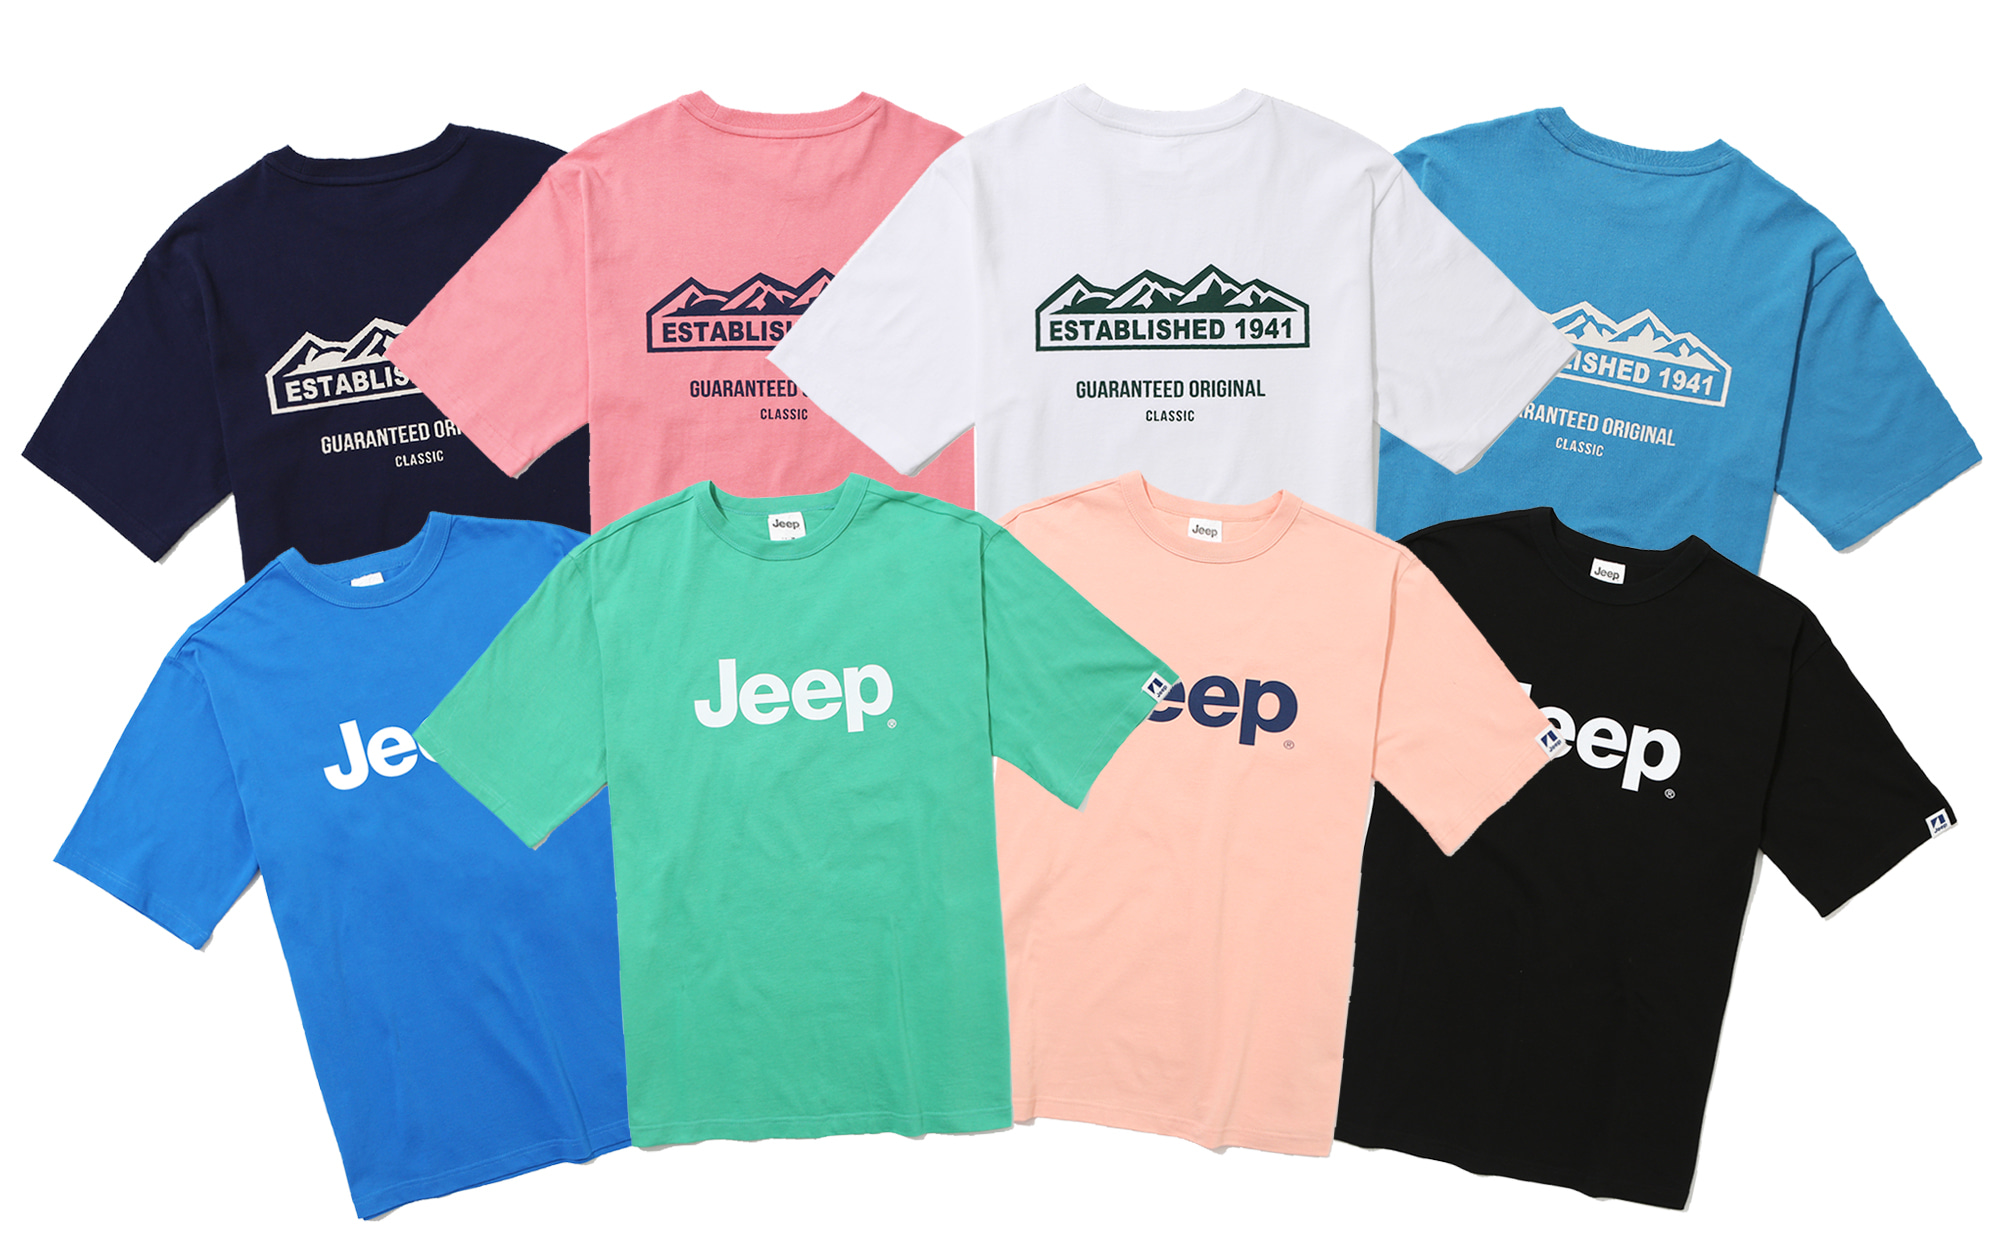 Jeep 2020 Summer T-Shirts